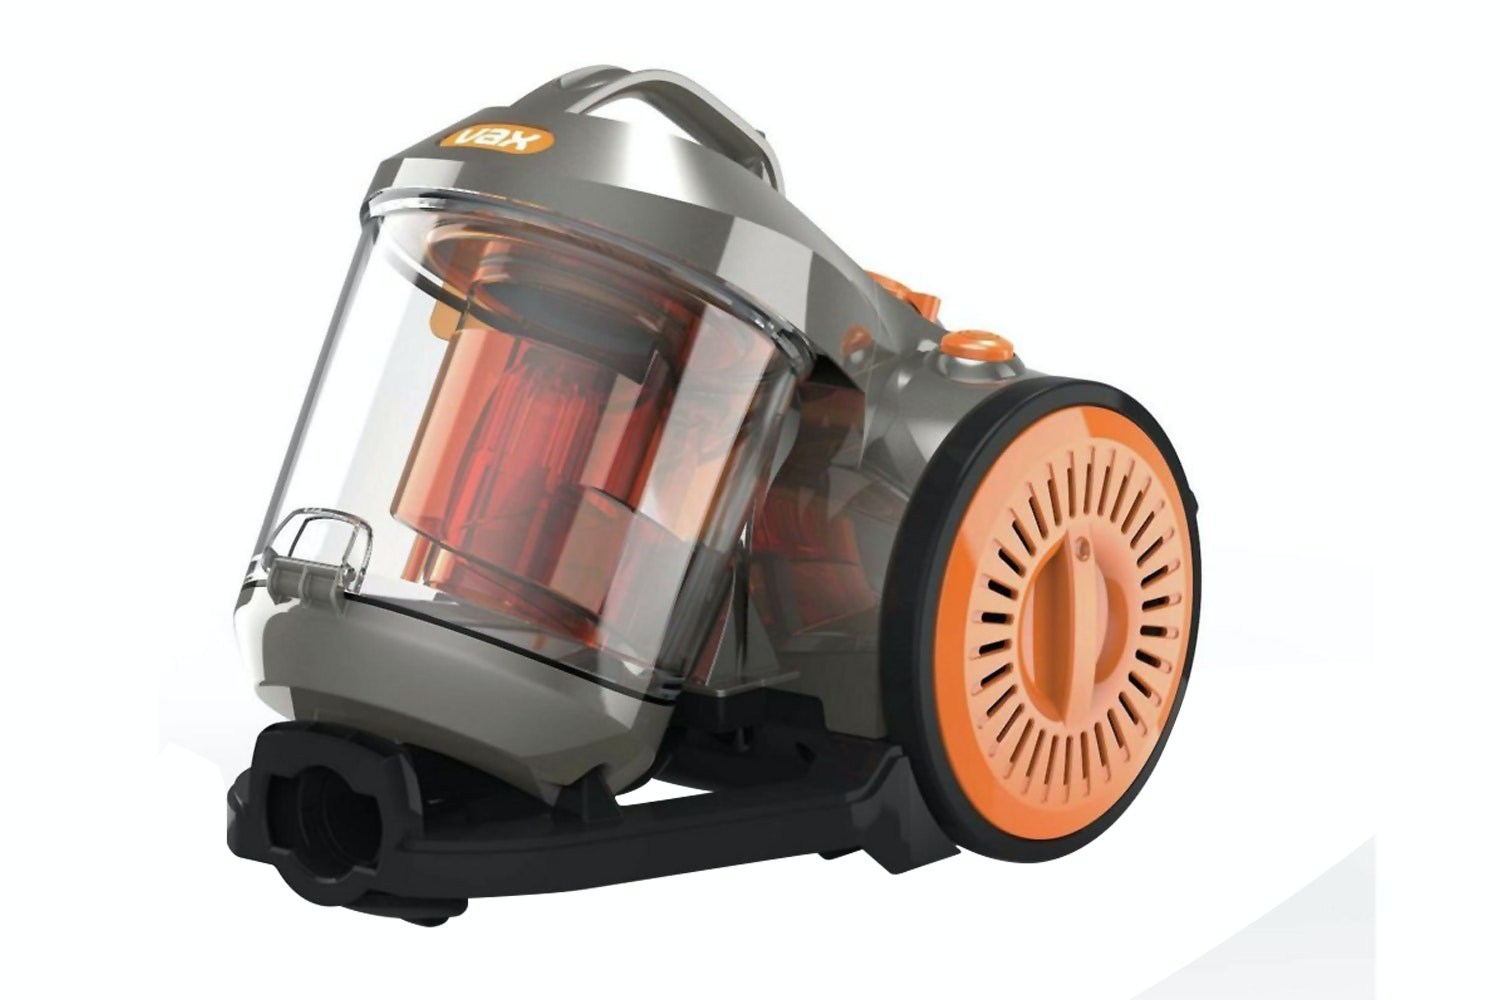 Vax Power 3 Bagless Vacuum Cleaner   AWC01